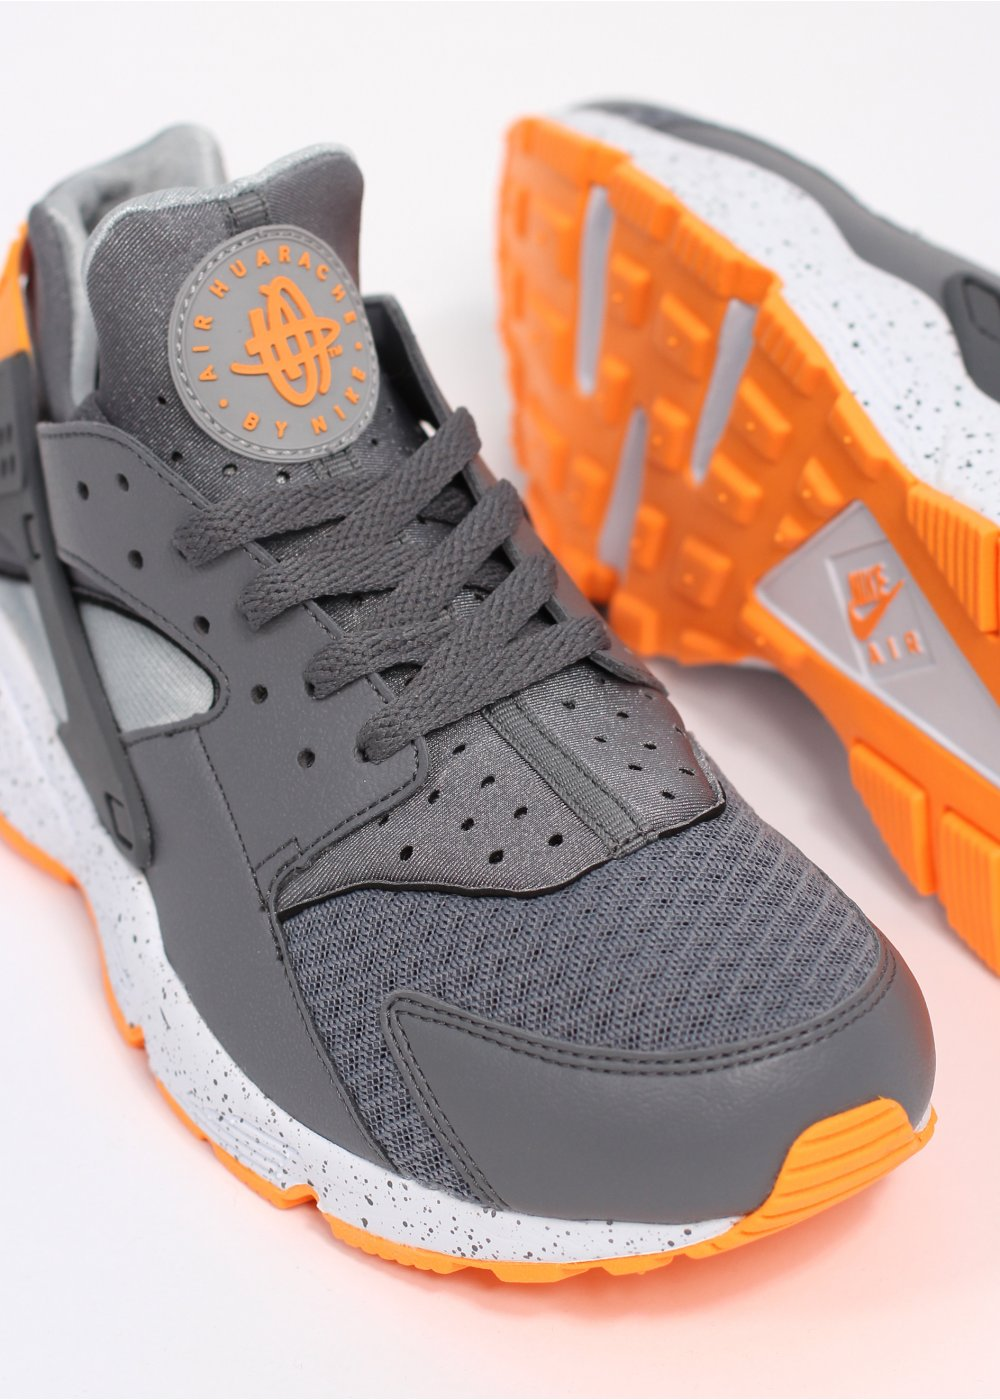 2cb0a37289a2f Nike Air Huarache Run Trainers - Cool Grey   Atomic Orange